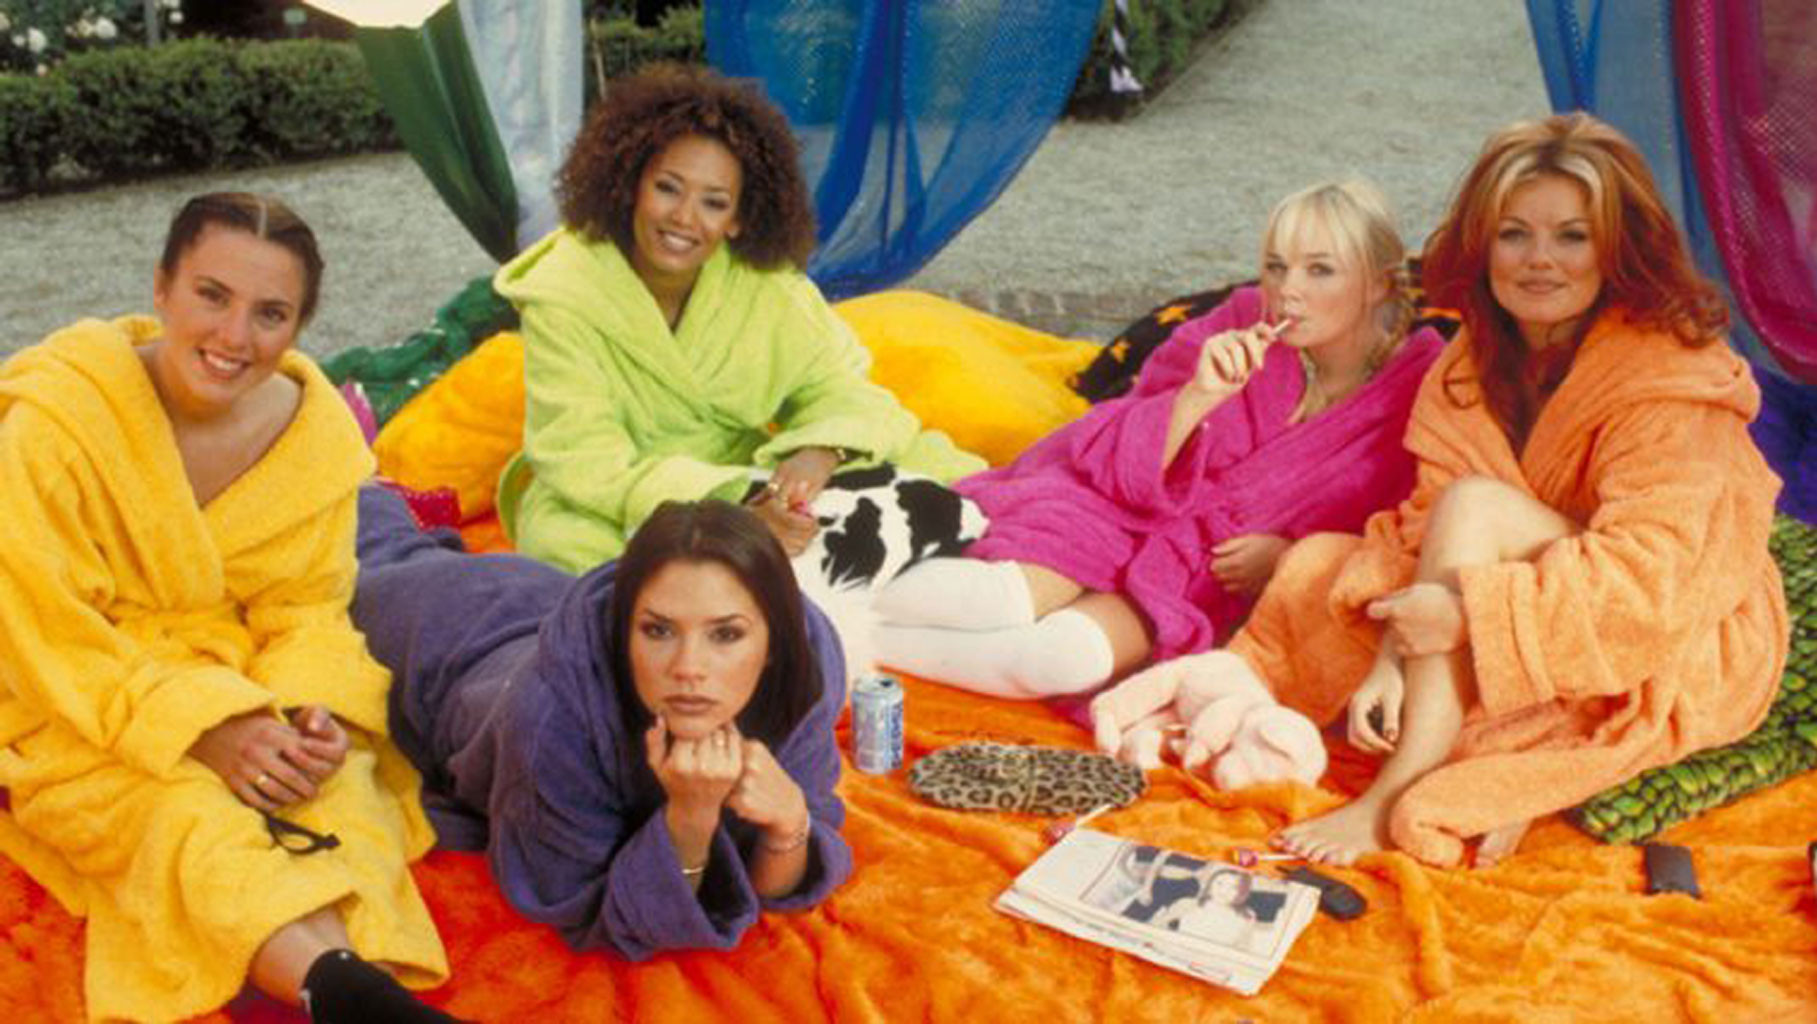 Spice World, Spice Girls